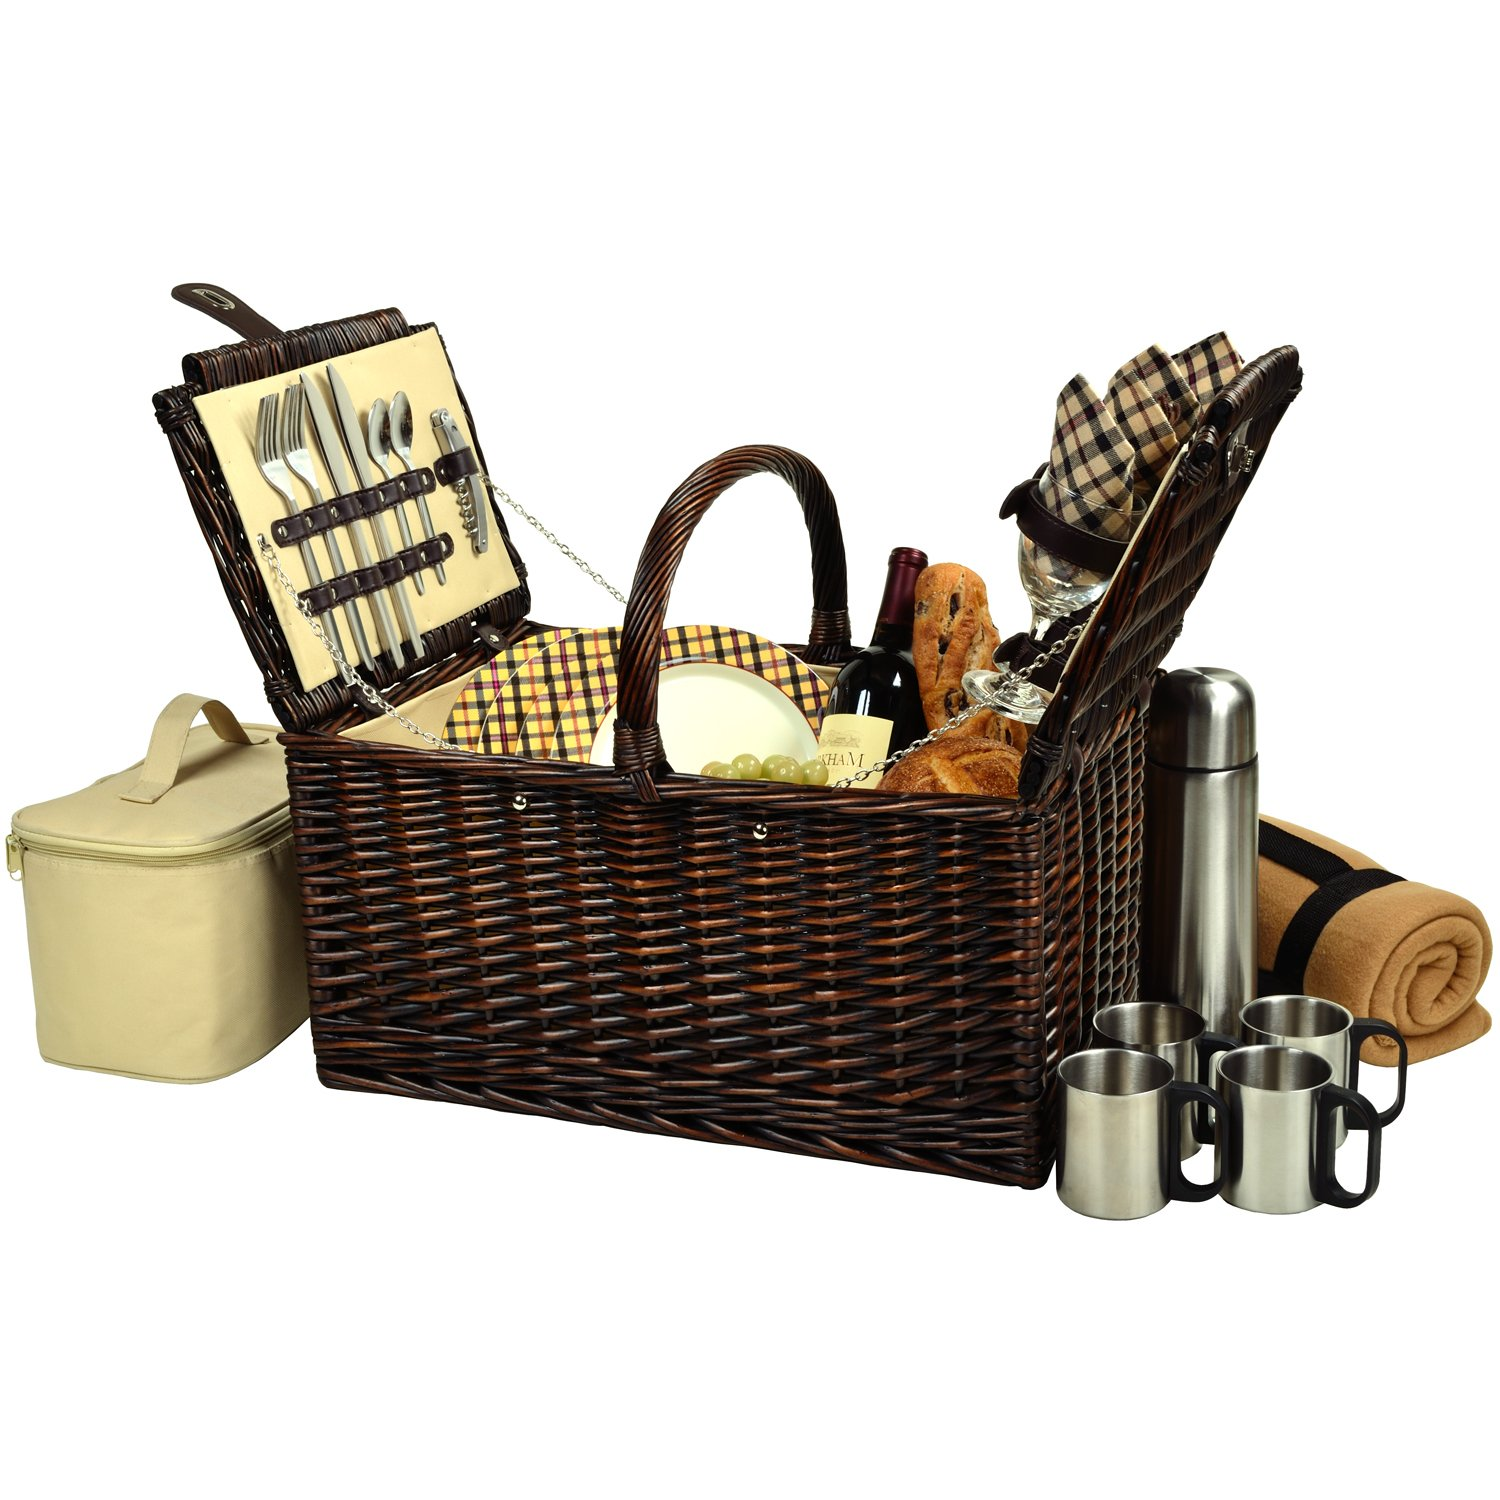 Picnic at Ascot Buckingham Willow Picnic Basket with Service for 4 with Blanket and Coffee Service - London Plaid